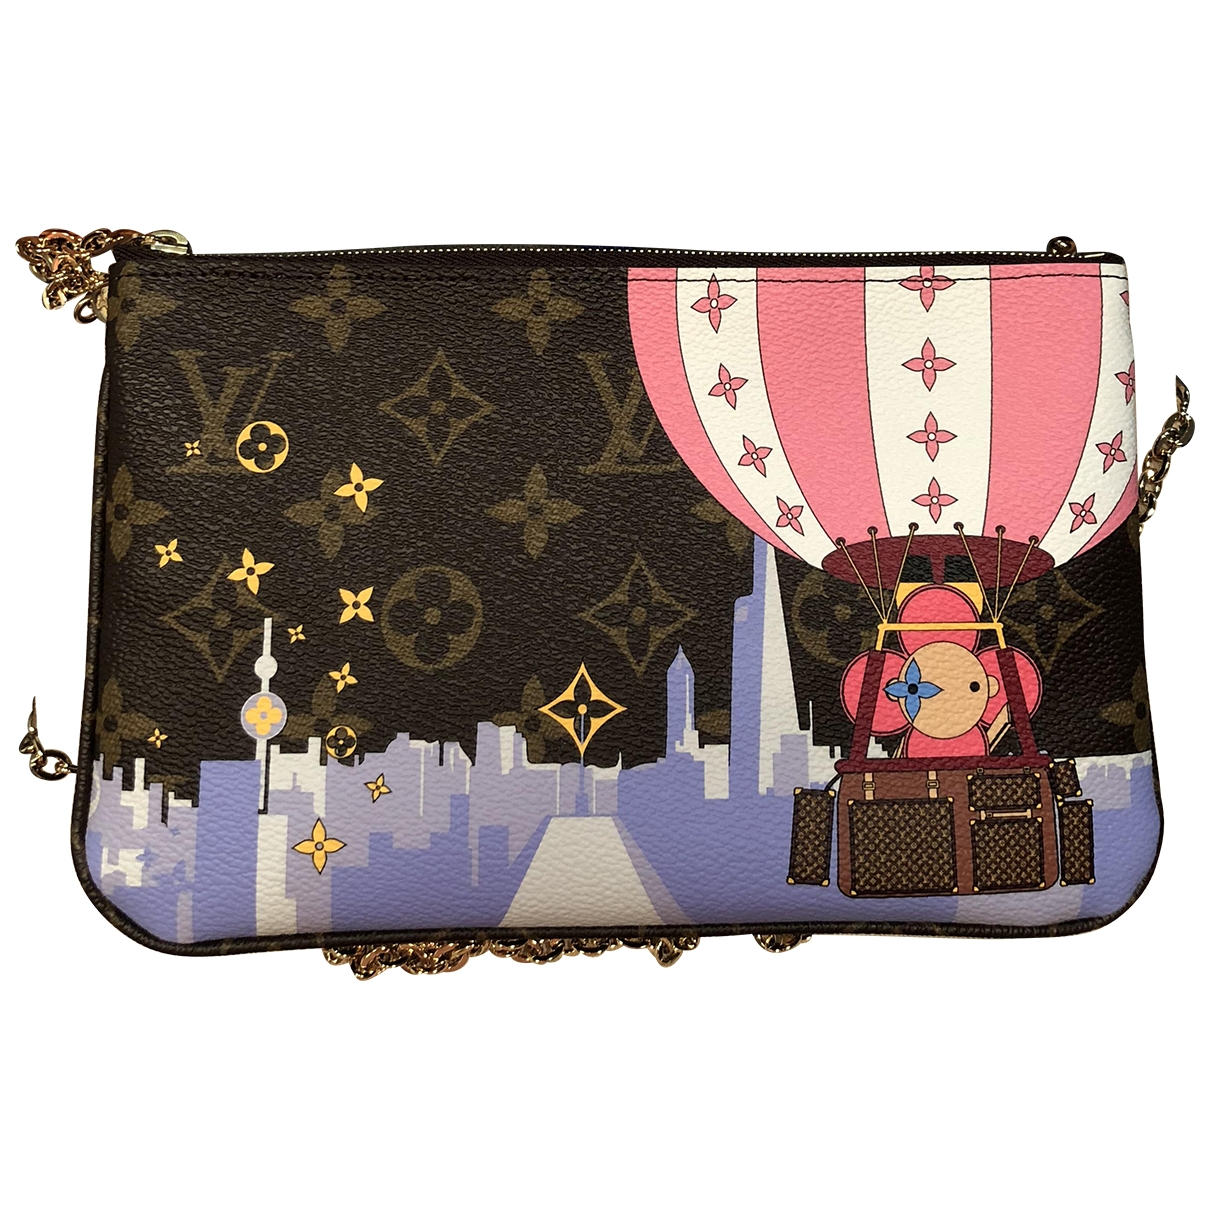 Louis Vuitton Double zip Handtasche in  Bunt Leinen